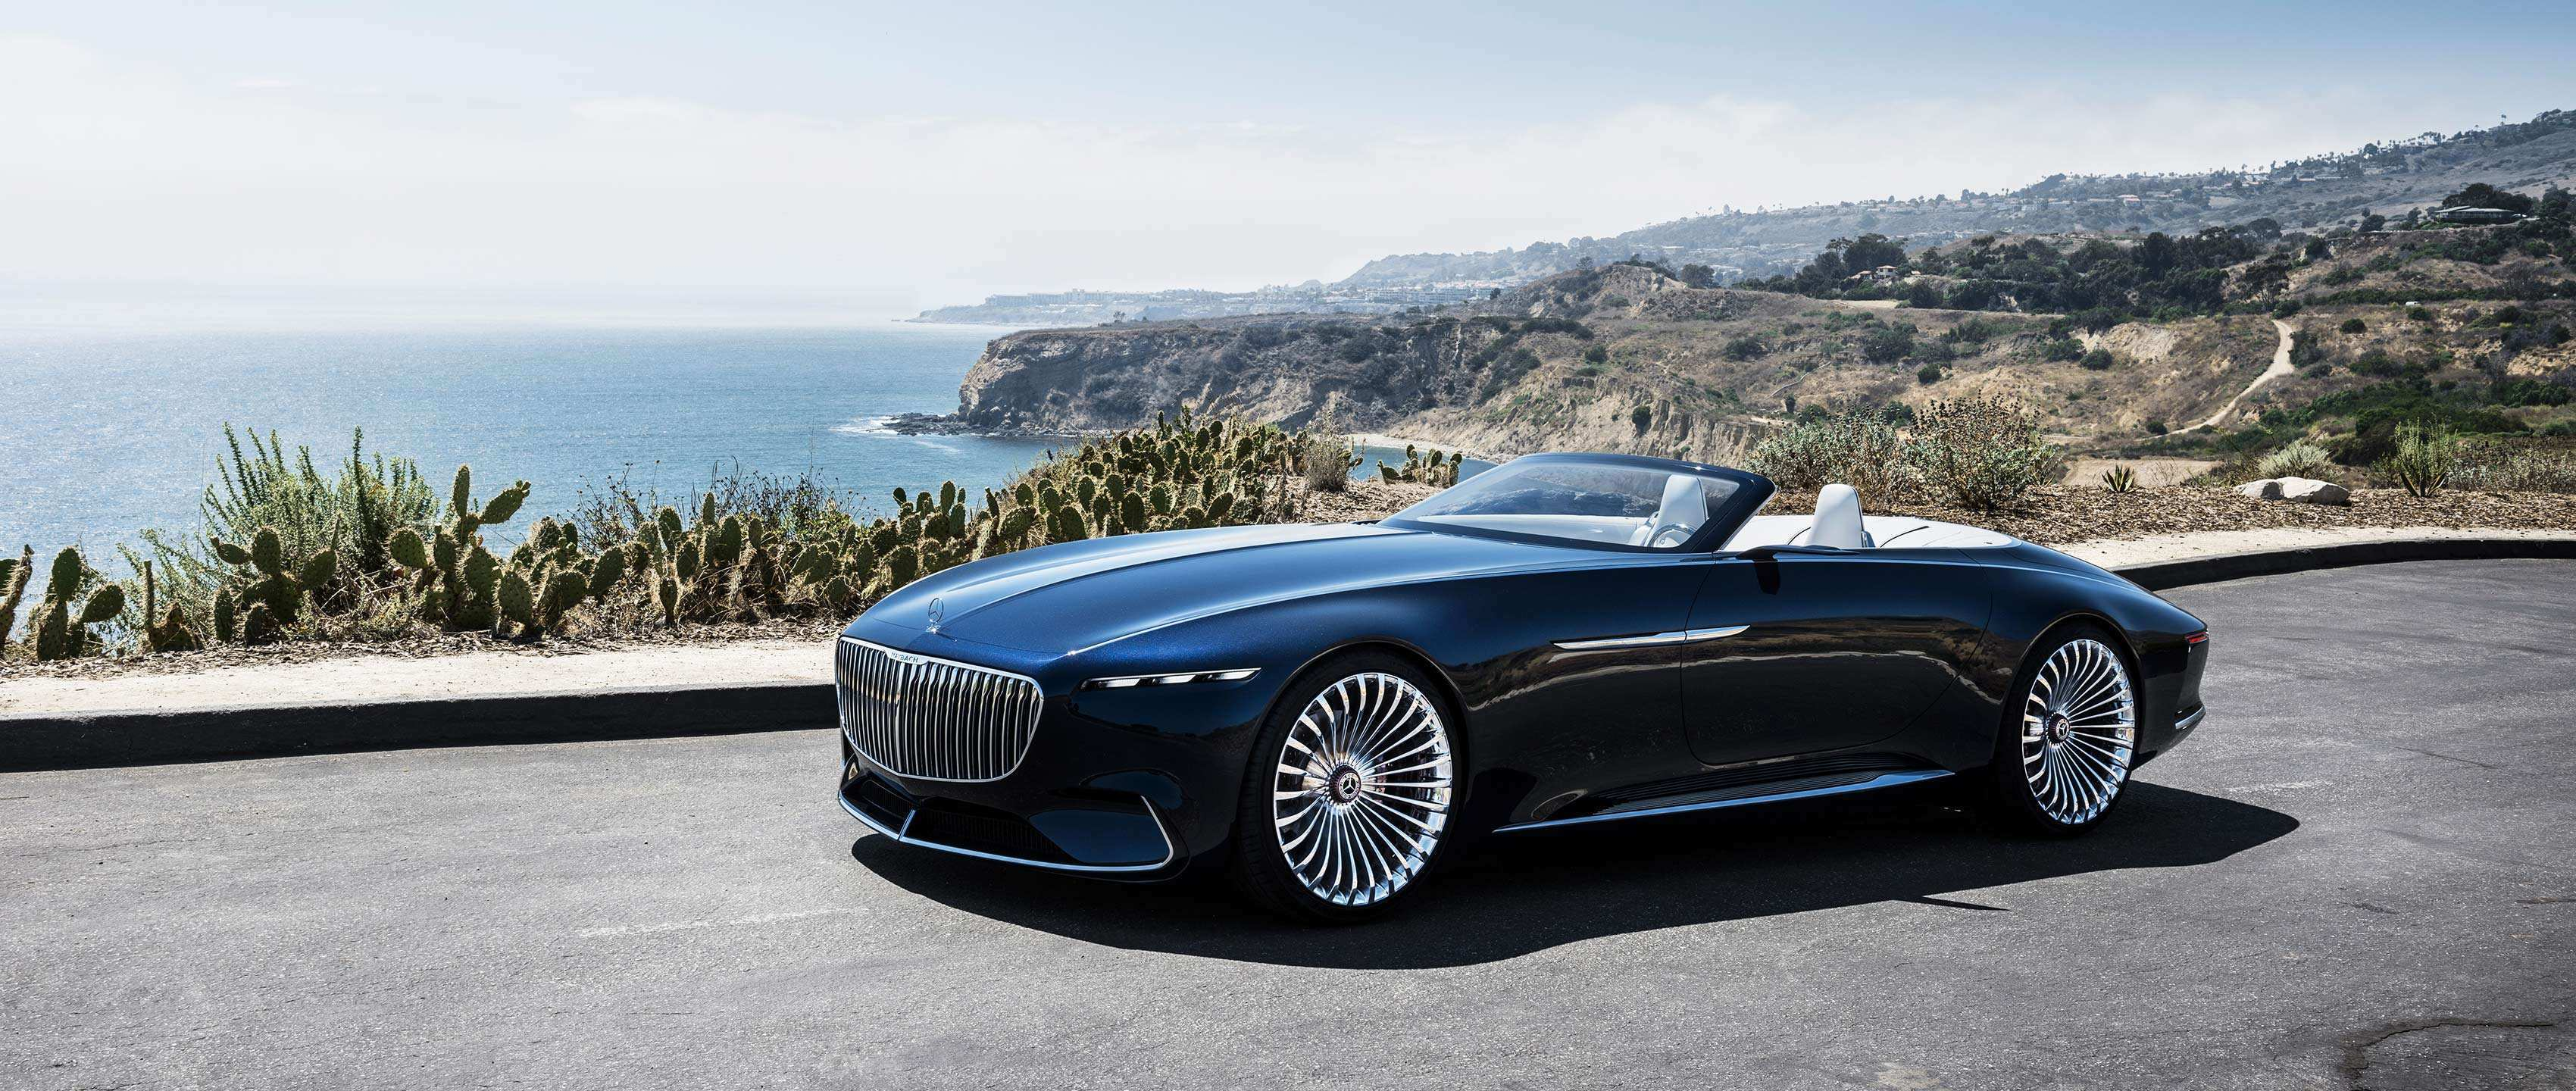 49 A 2019 Mercedes Maybach 6 Cabriolet Price Picture